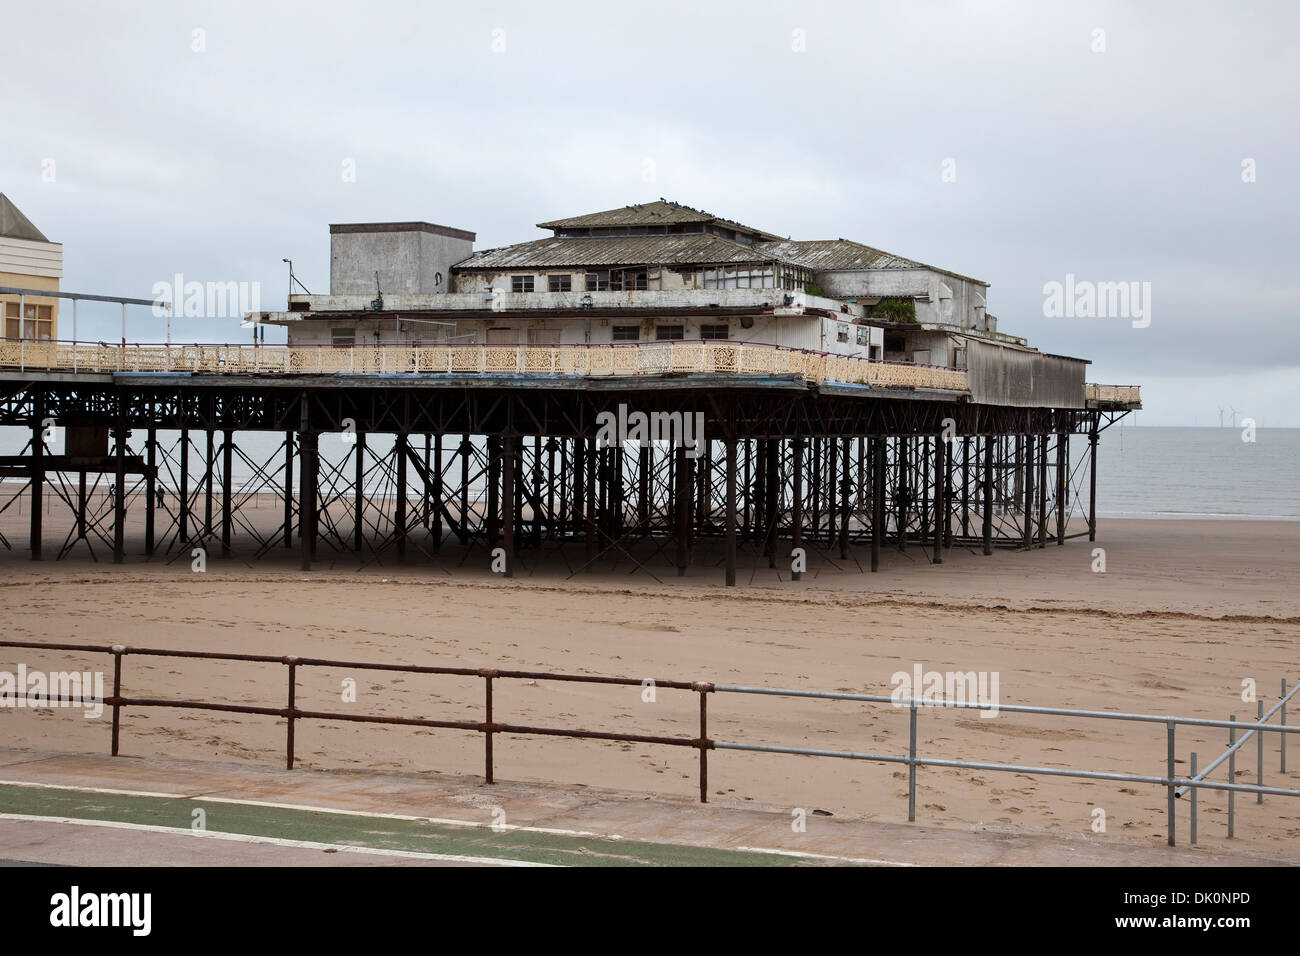 The former derelict Victoria Pier at Colwyn Bay on the North Wales coast opened in 1900 and closed to the public July 2008 - Stock Image